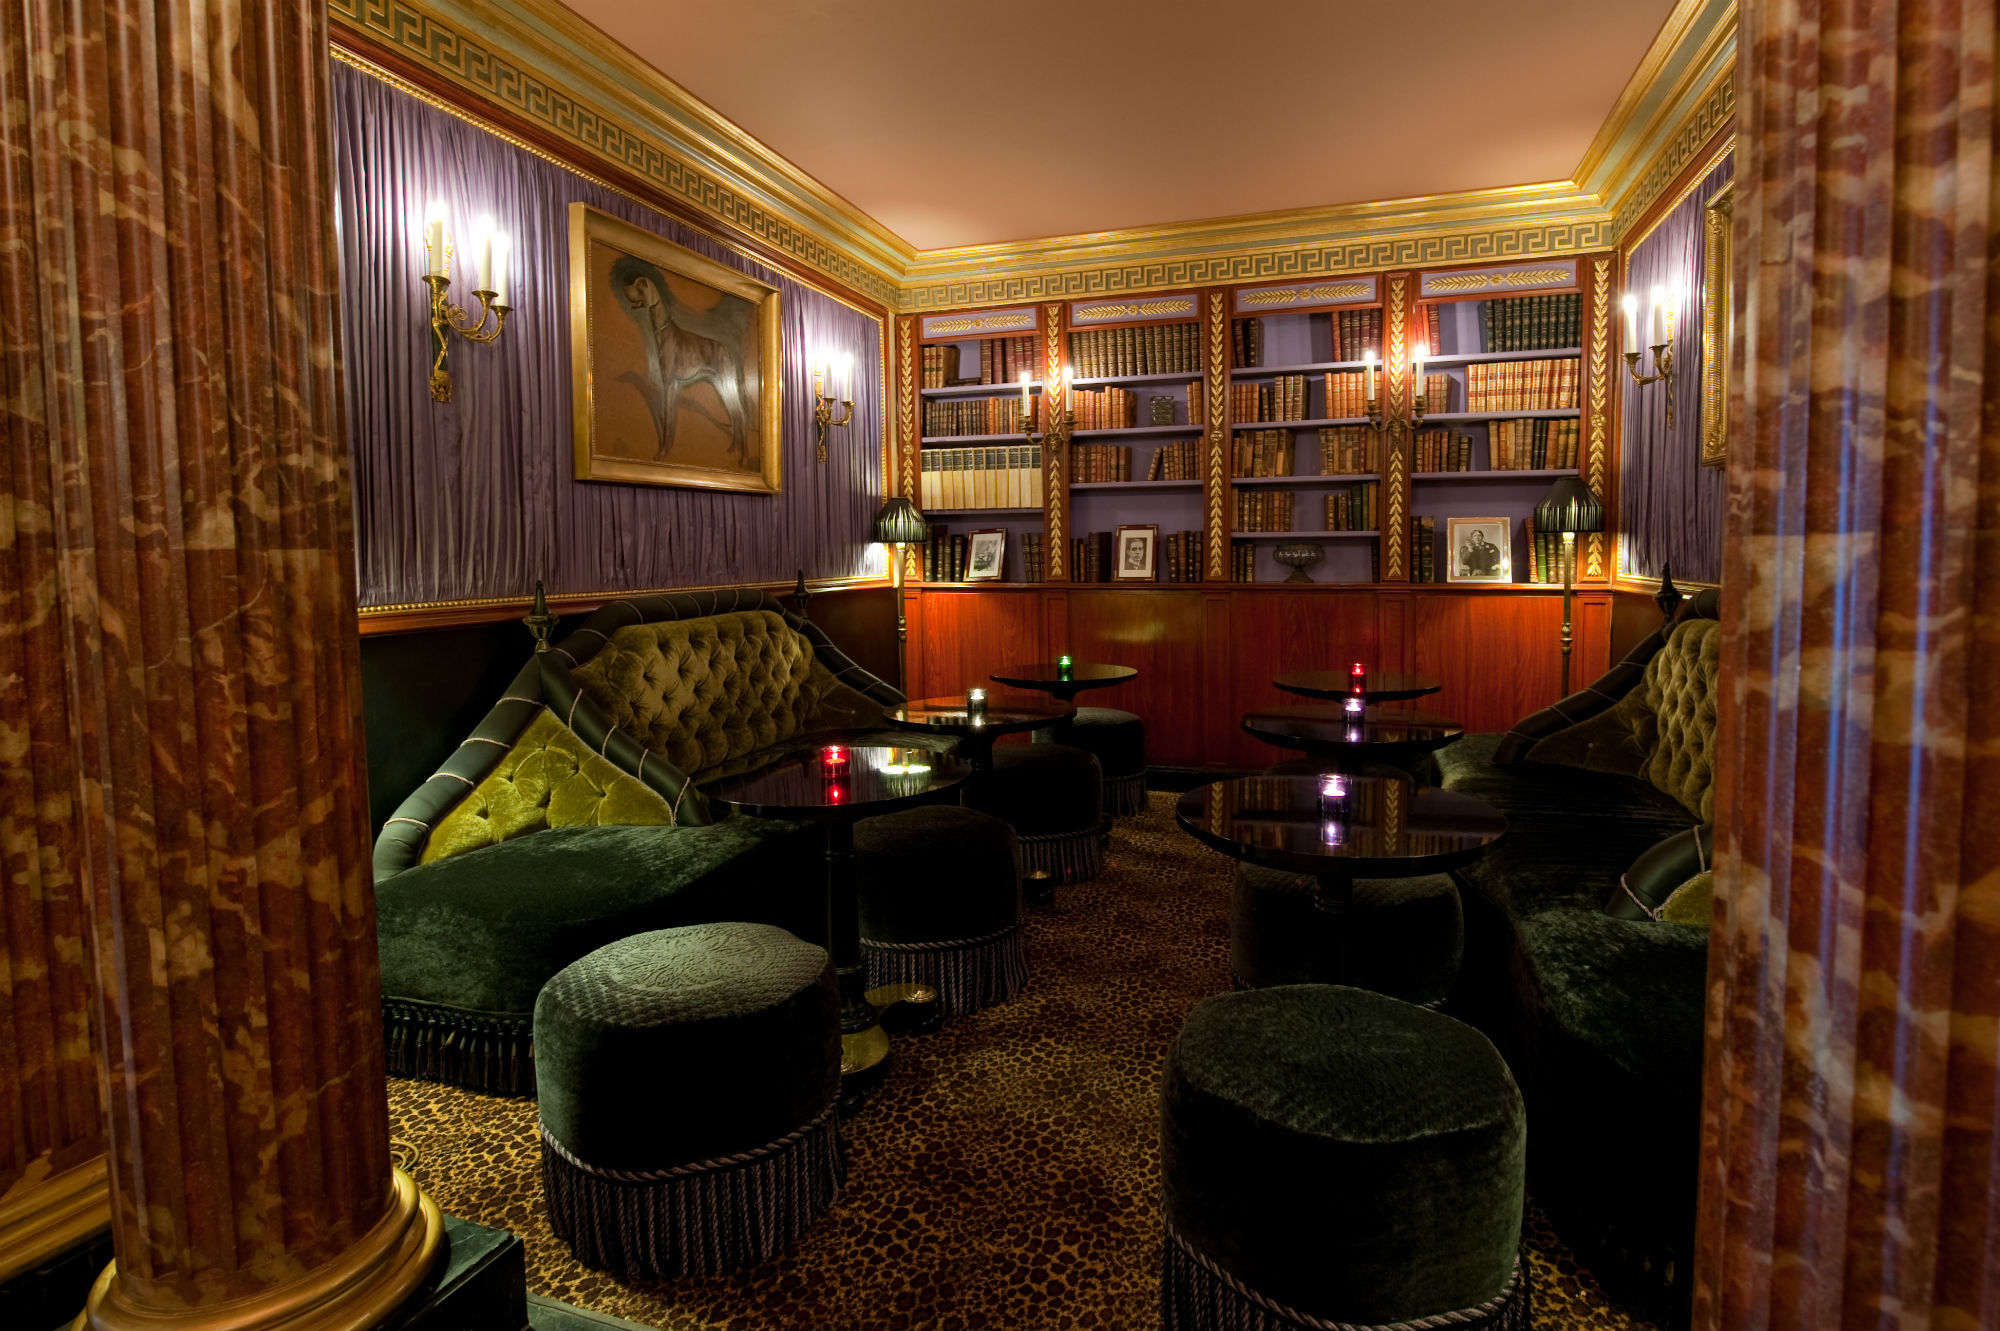 L 39 hotel bar bars and pubs in 16e arrondissement paris for Design hotel paris 11